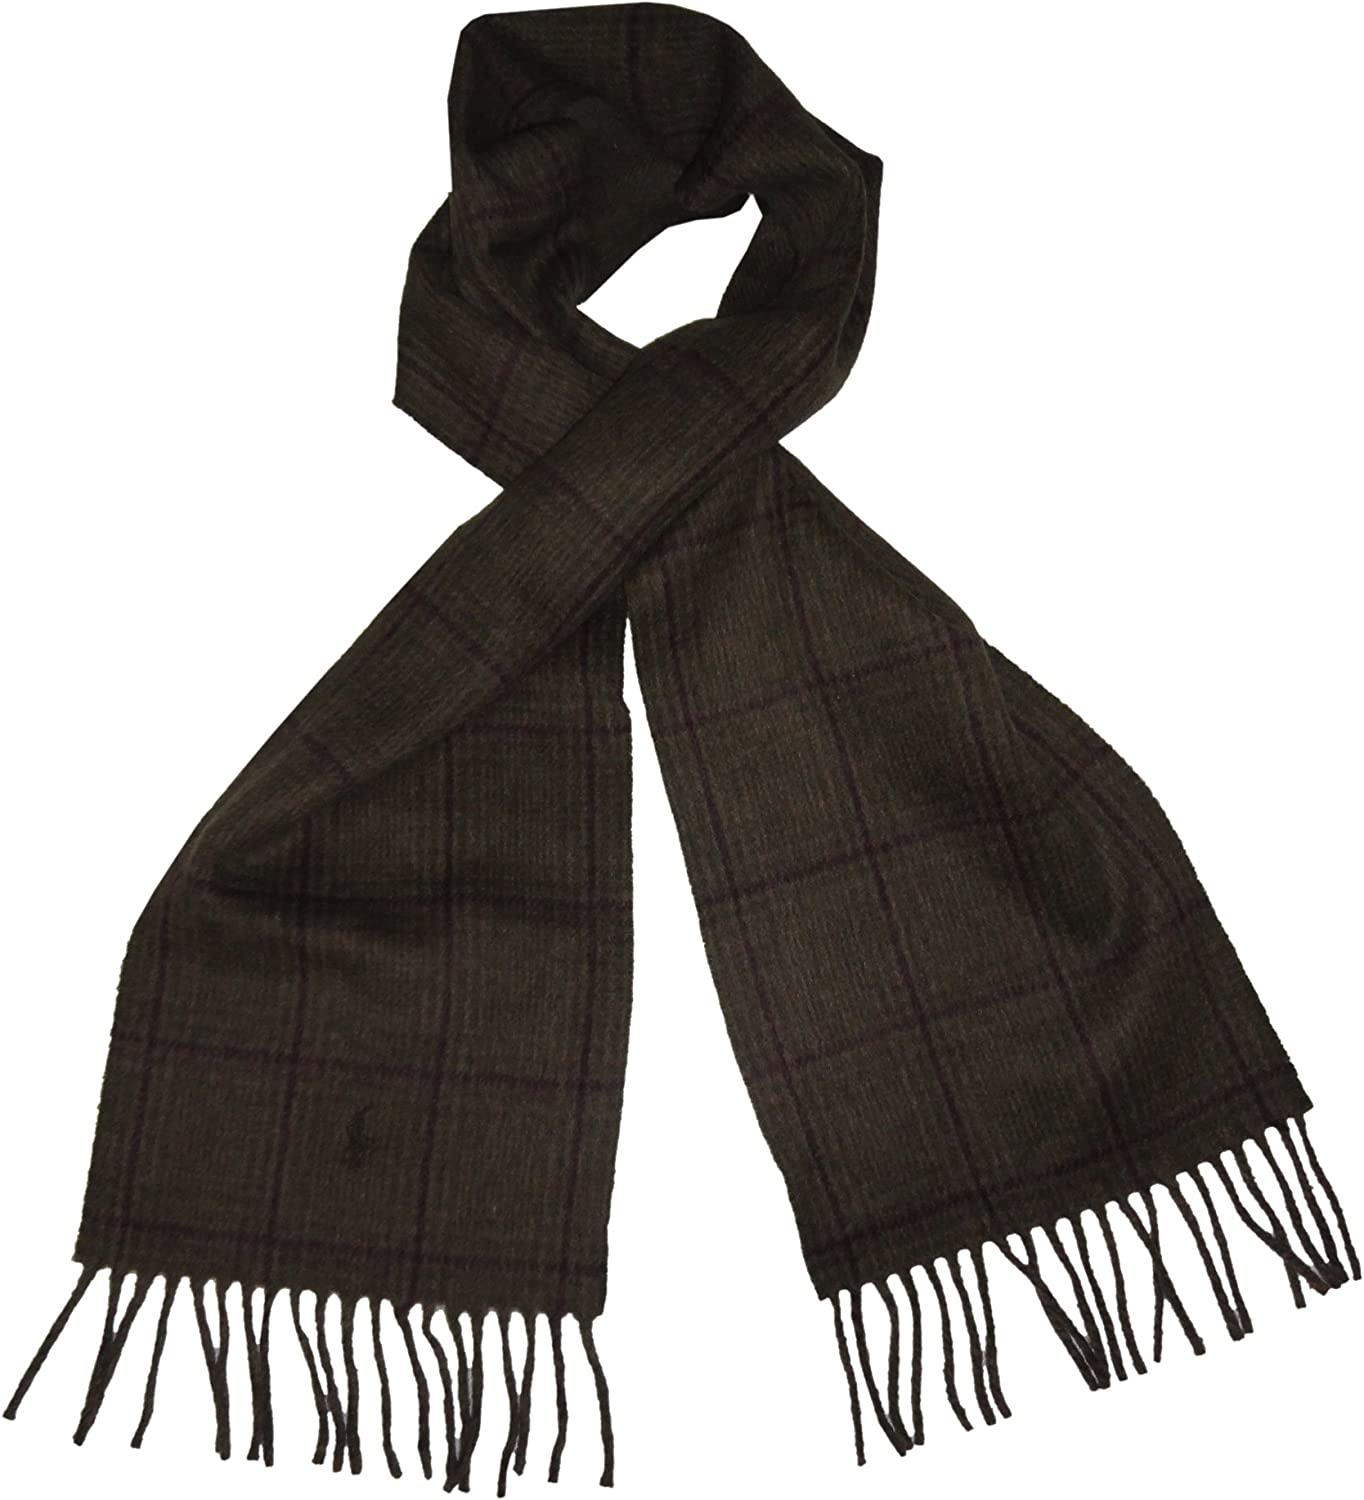 Polo Ralph Lauren Mens Wool Blend Winter Scarf Olive and Purple Plaid